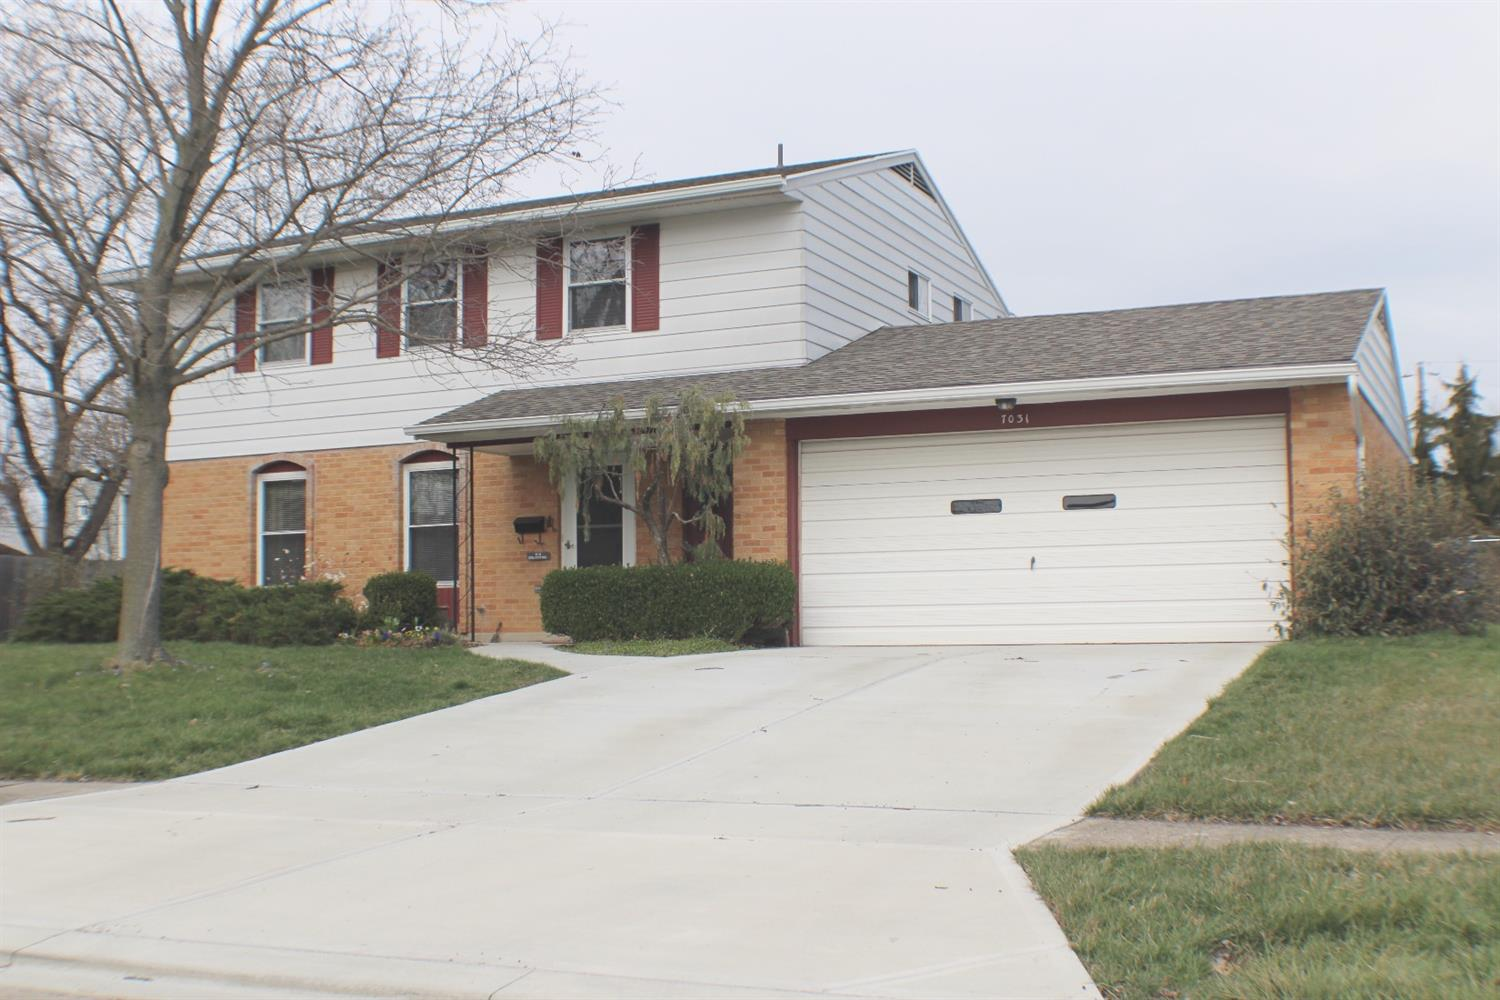 7031 Sonnet Pl Montgomery Co Oh 45424 Listing Details